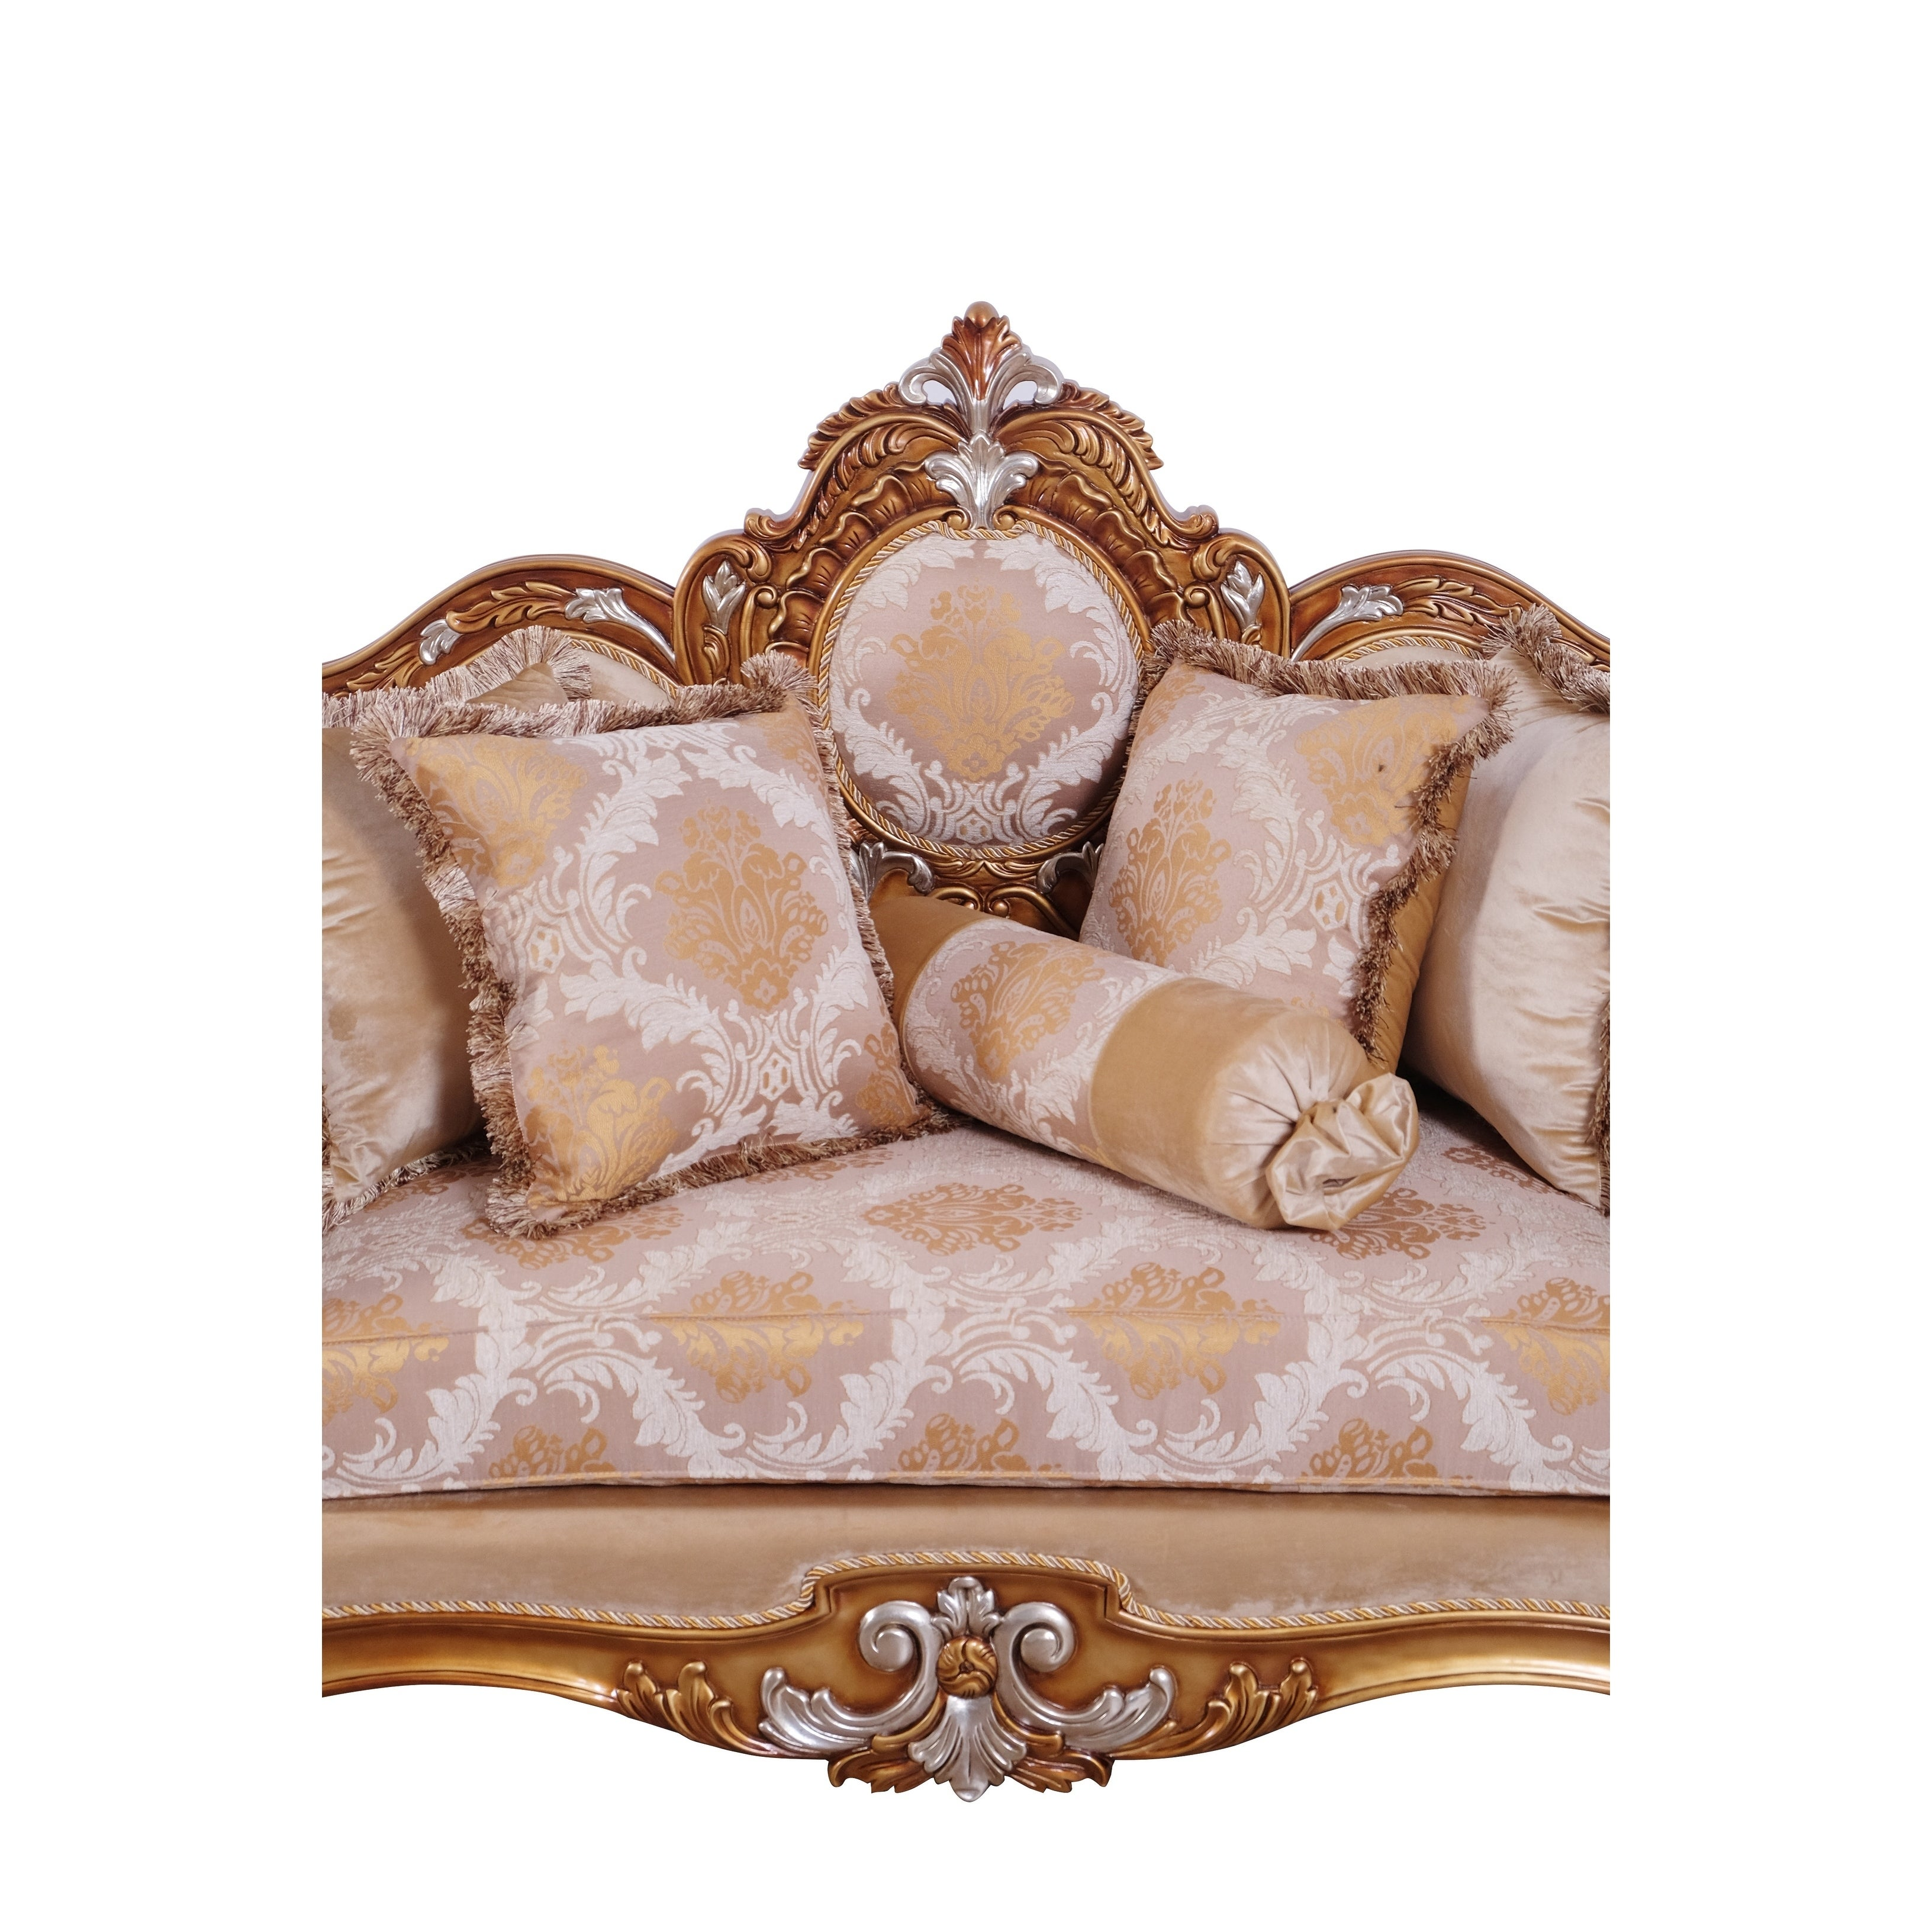 Baroque Style Wooden Loveseat With Rolled Armrest Beige And Gold On Sale Overstock 29158192